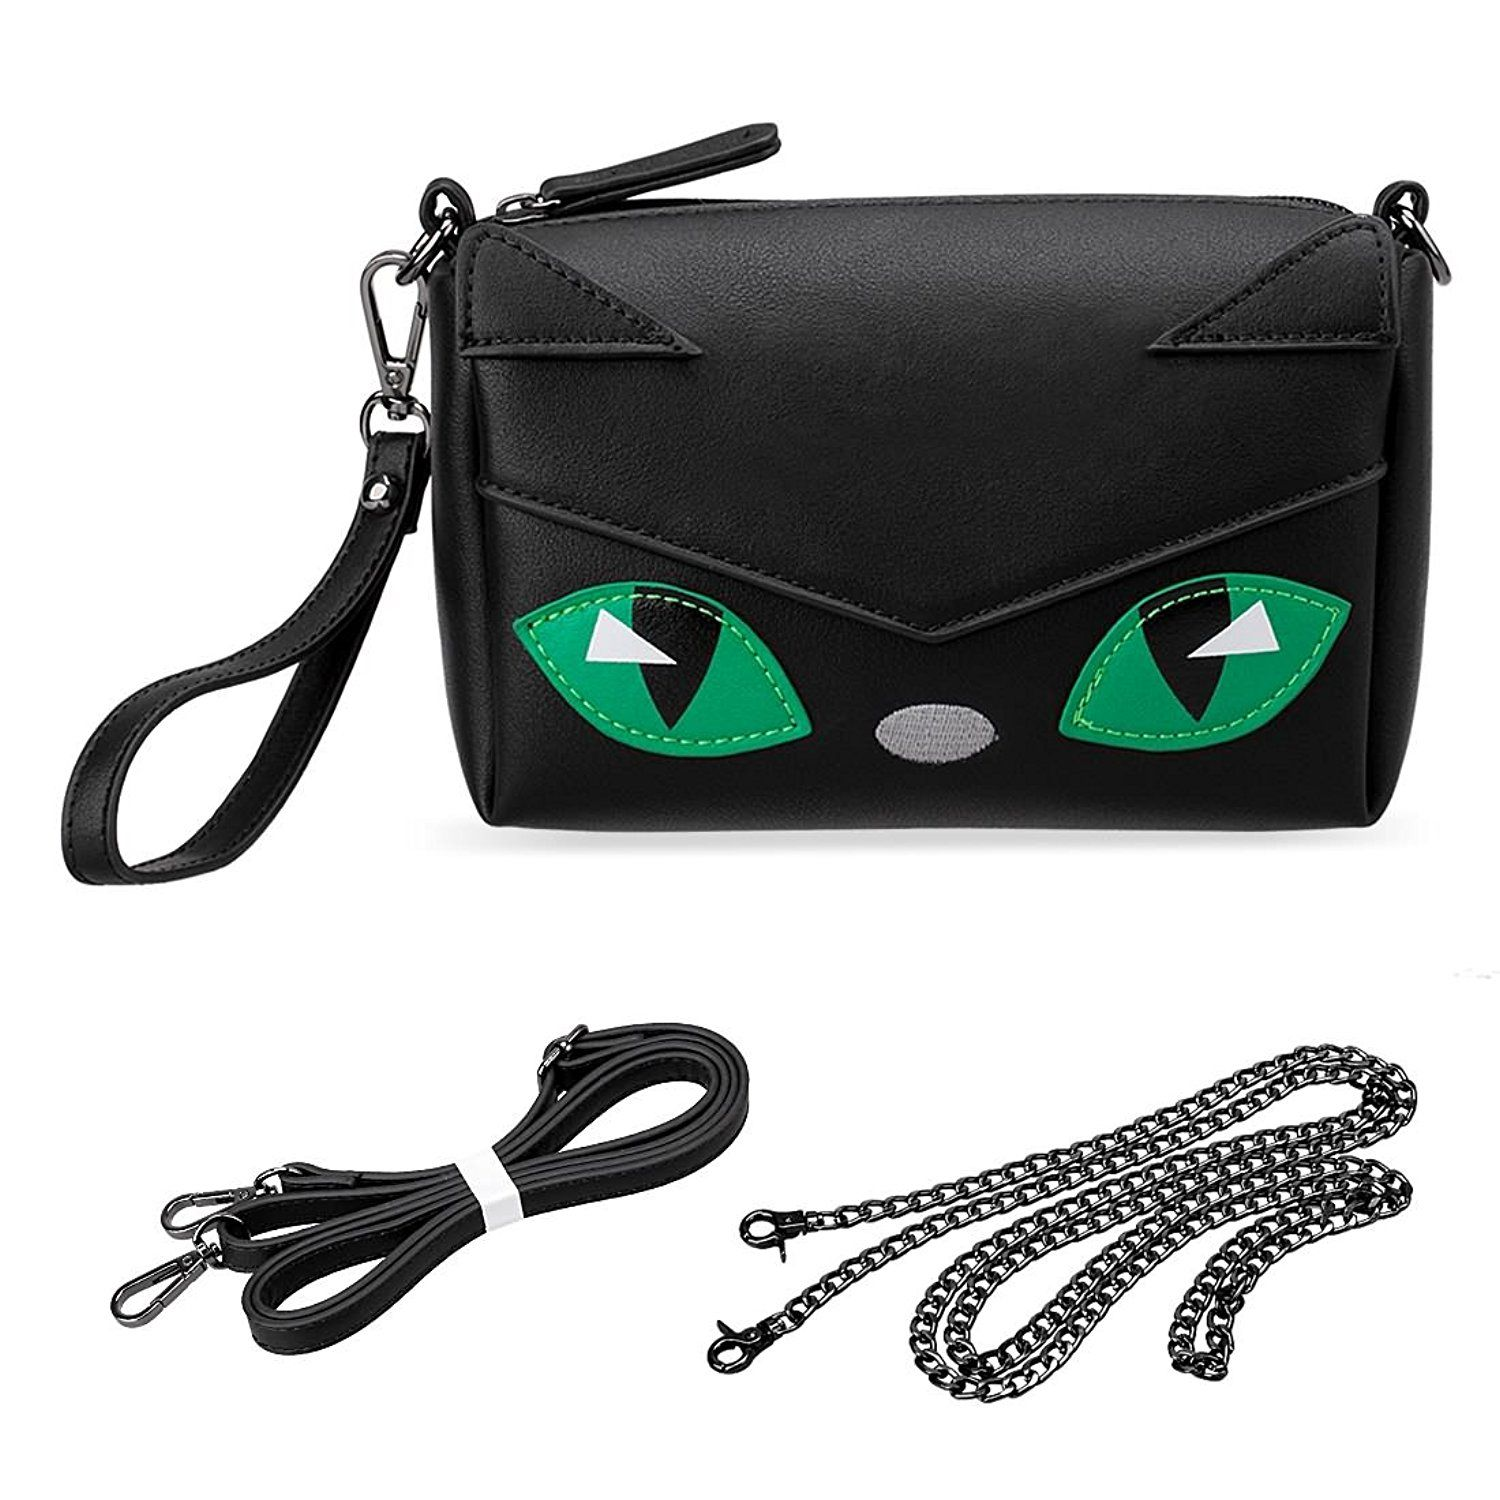 My bag is watching you...  p BMC PU Faux Leather Small Size Cute Animal  Face Crossbody Clutch Handbag - Kitty Cat. 90816f46d3586